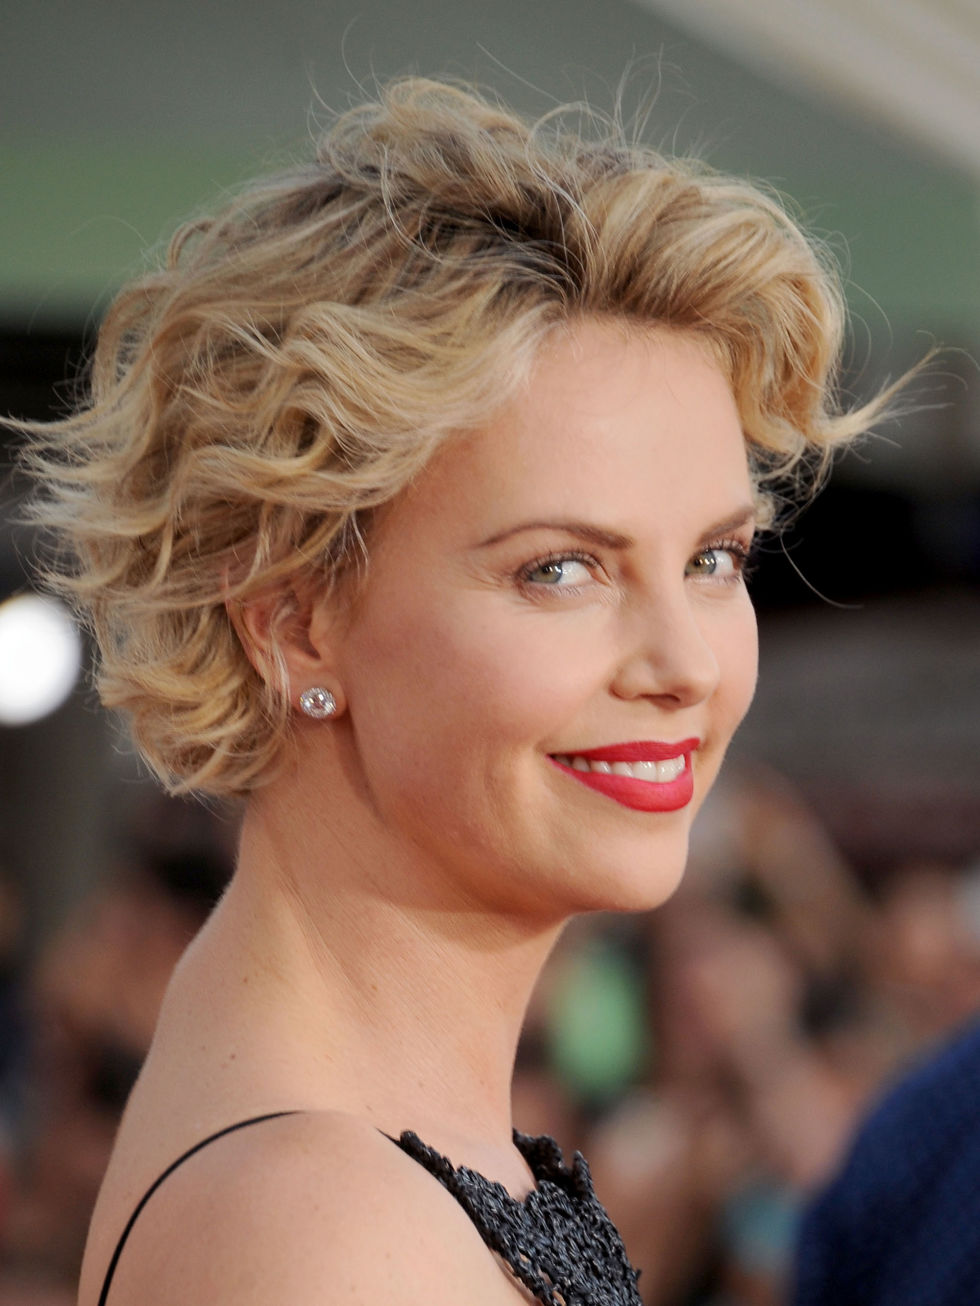 Fantastic How To Grow Out Your Hair Celebs Growing Out Short Hair Short Hairstyles Gunalazisus